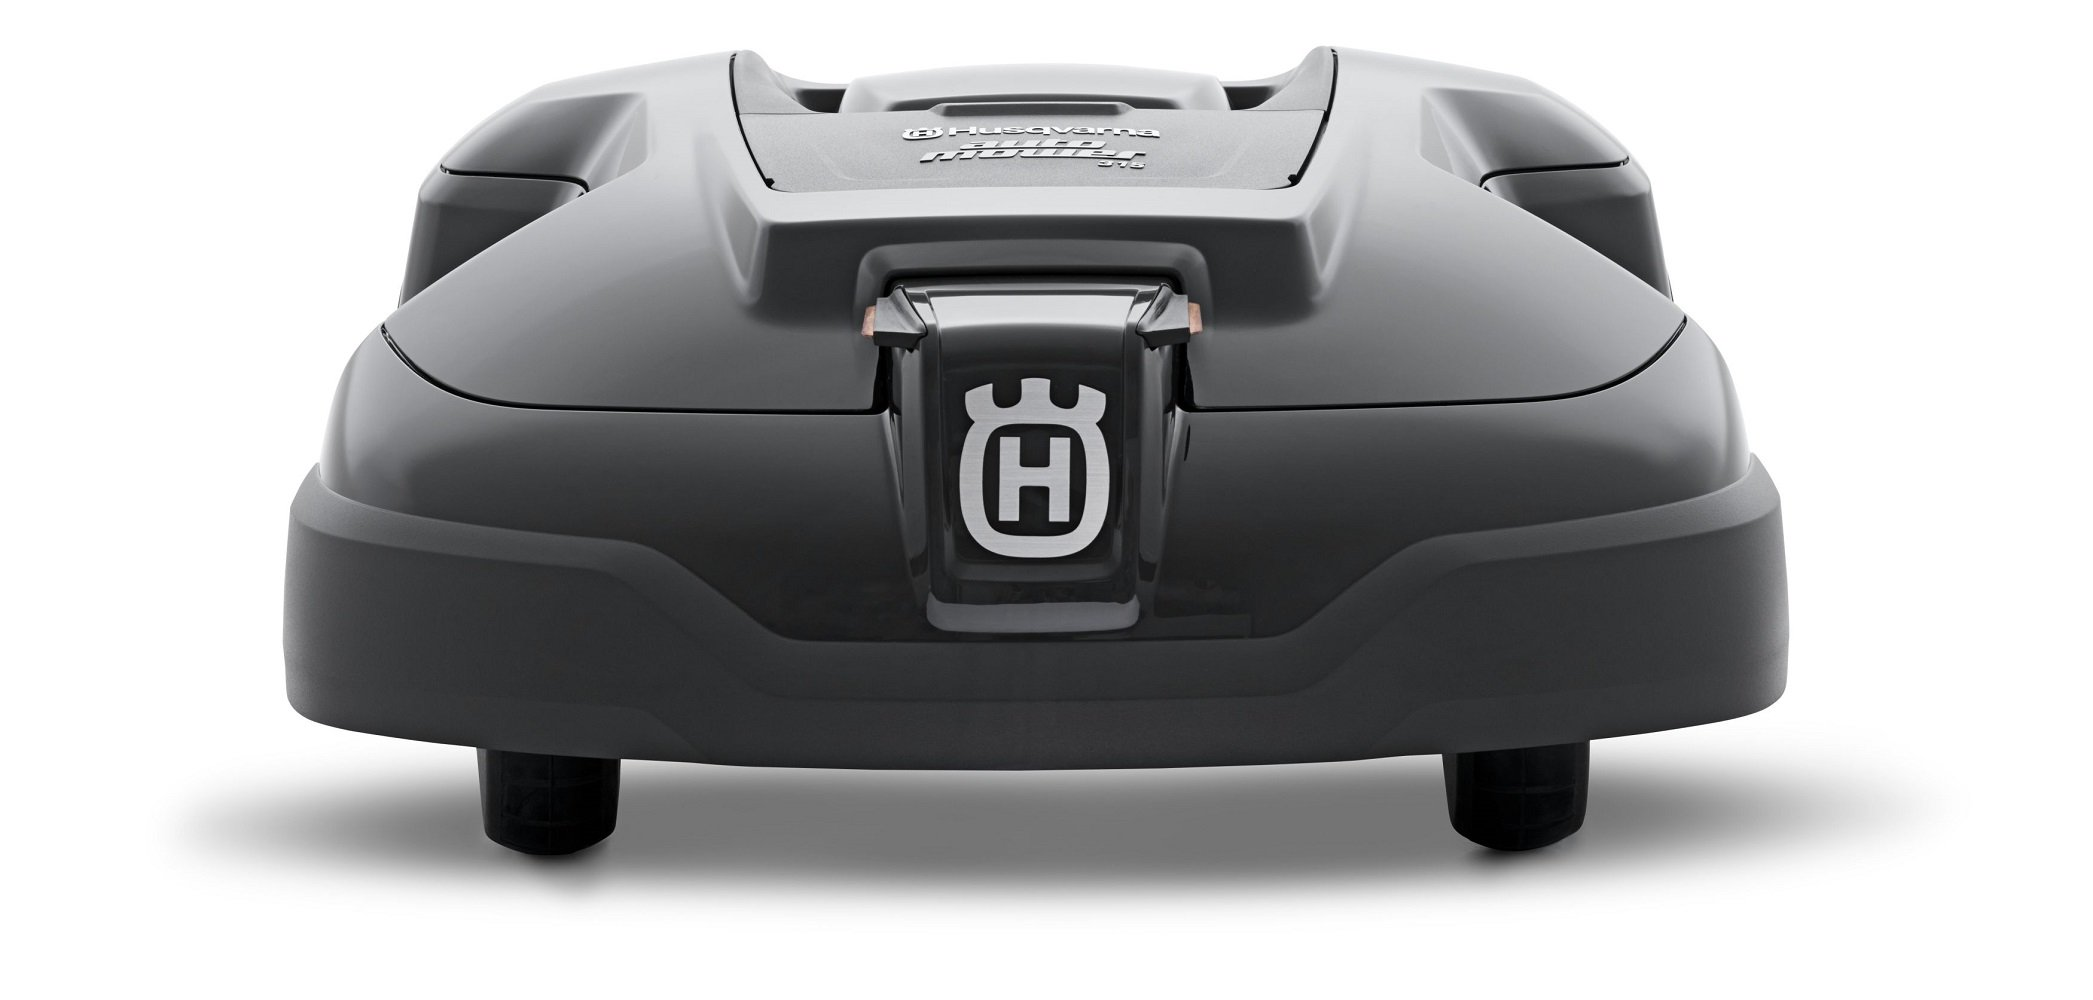 Husqvarna automower 310, robotic lawn mower 2 smart home meets smart lawn - manage your lawn with the touch of a button and maintain a yard your neighbor's will envy; the connect@home app allows you to set and adjust your automower's cutting schedule with ease (bluetooth connectivity works up to 100 ft) guided by hidden boundary wires, automower knows how to smartly maneuver around your yard and when to return to the charging station for a battery recharge quiet enough to run at night, you'll never have to worry about disturbing your neighbors again with noise or fumes